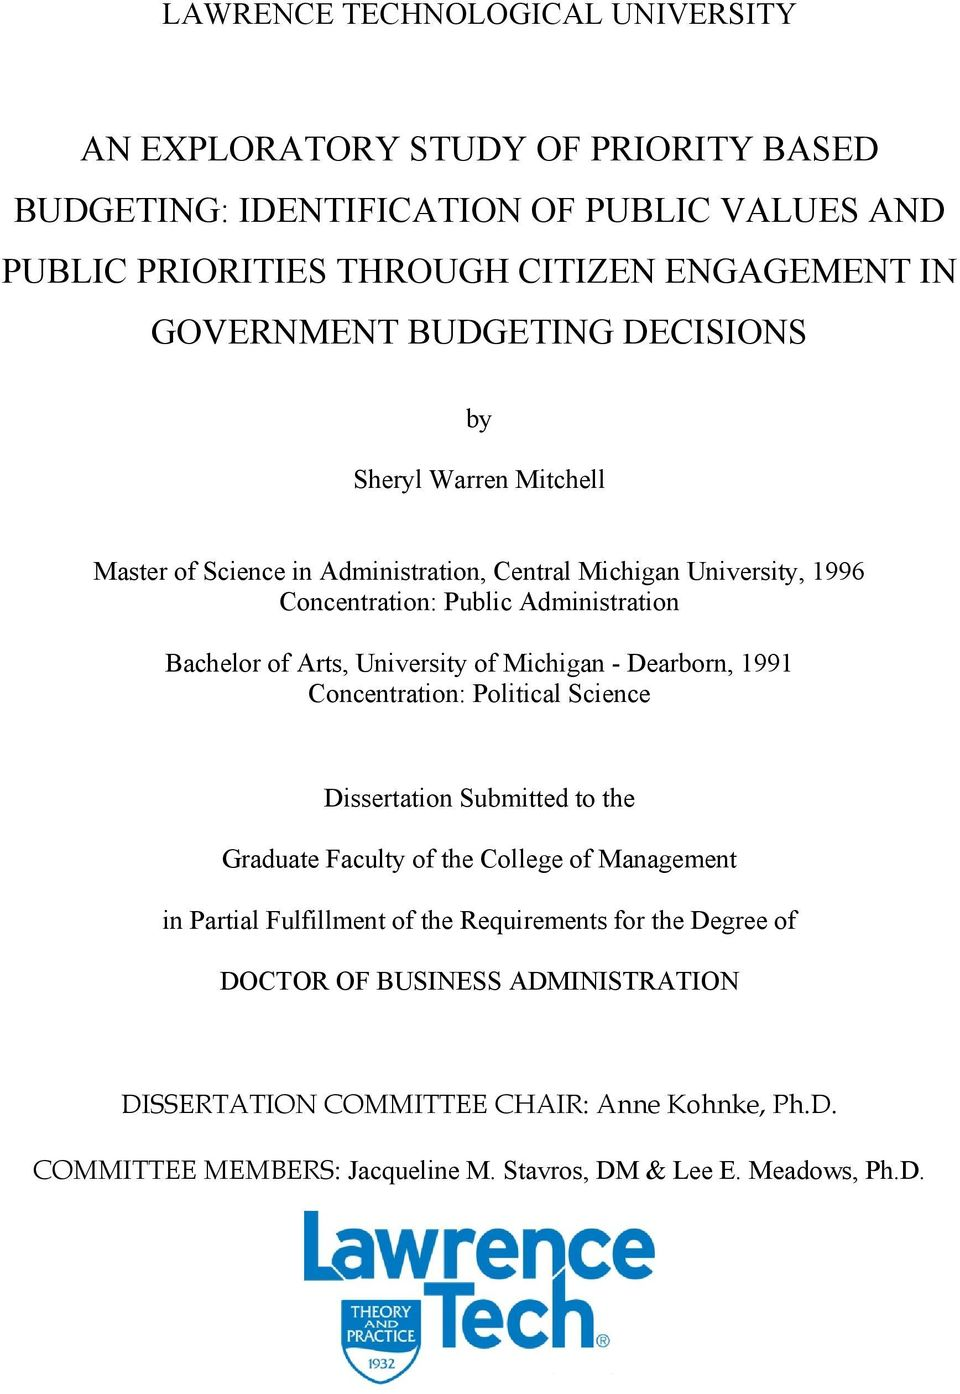 Arts, University of Michigan - Dearborn, 1991 Concentration: Political Science Dissertation Submitted to the Graduate Faculty of the College of Management in Partial Fulfillment